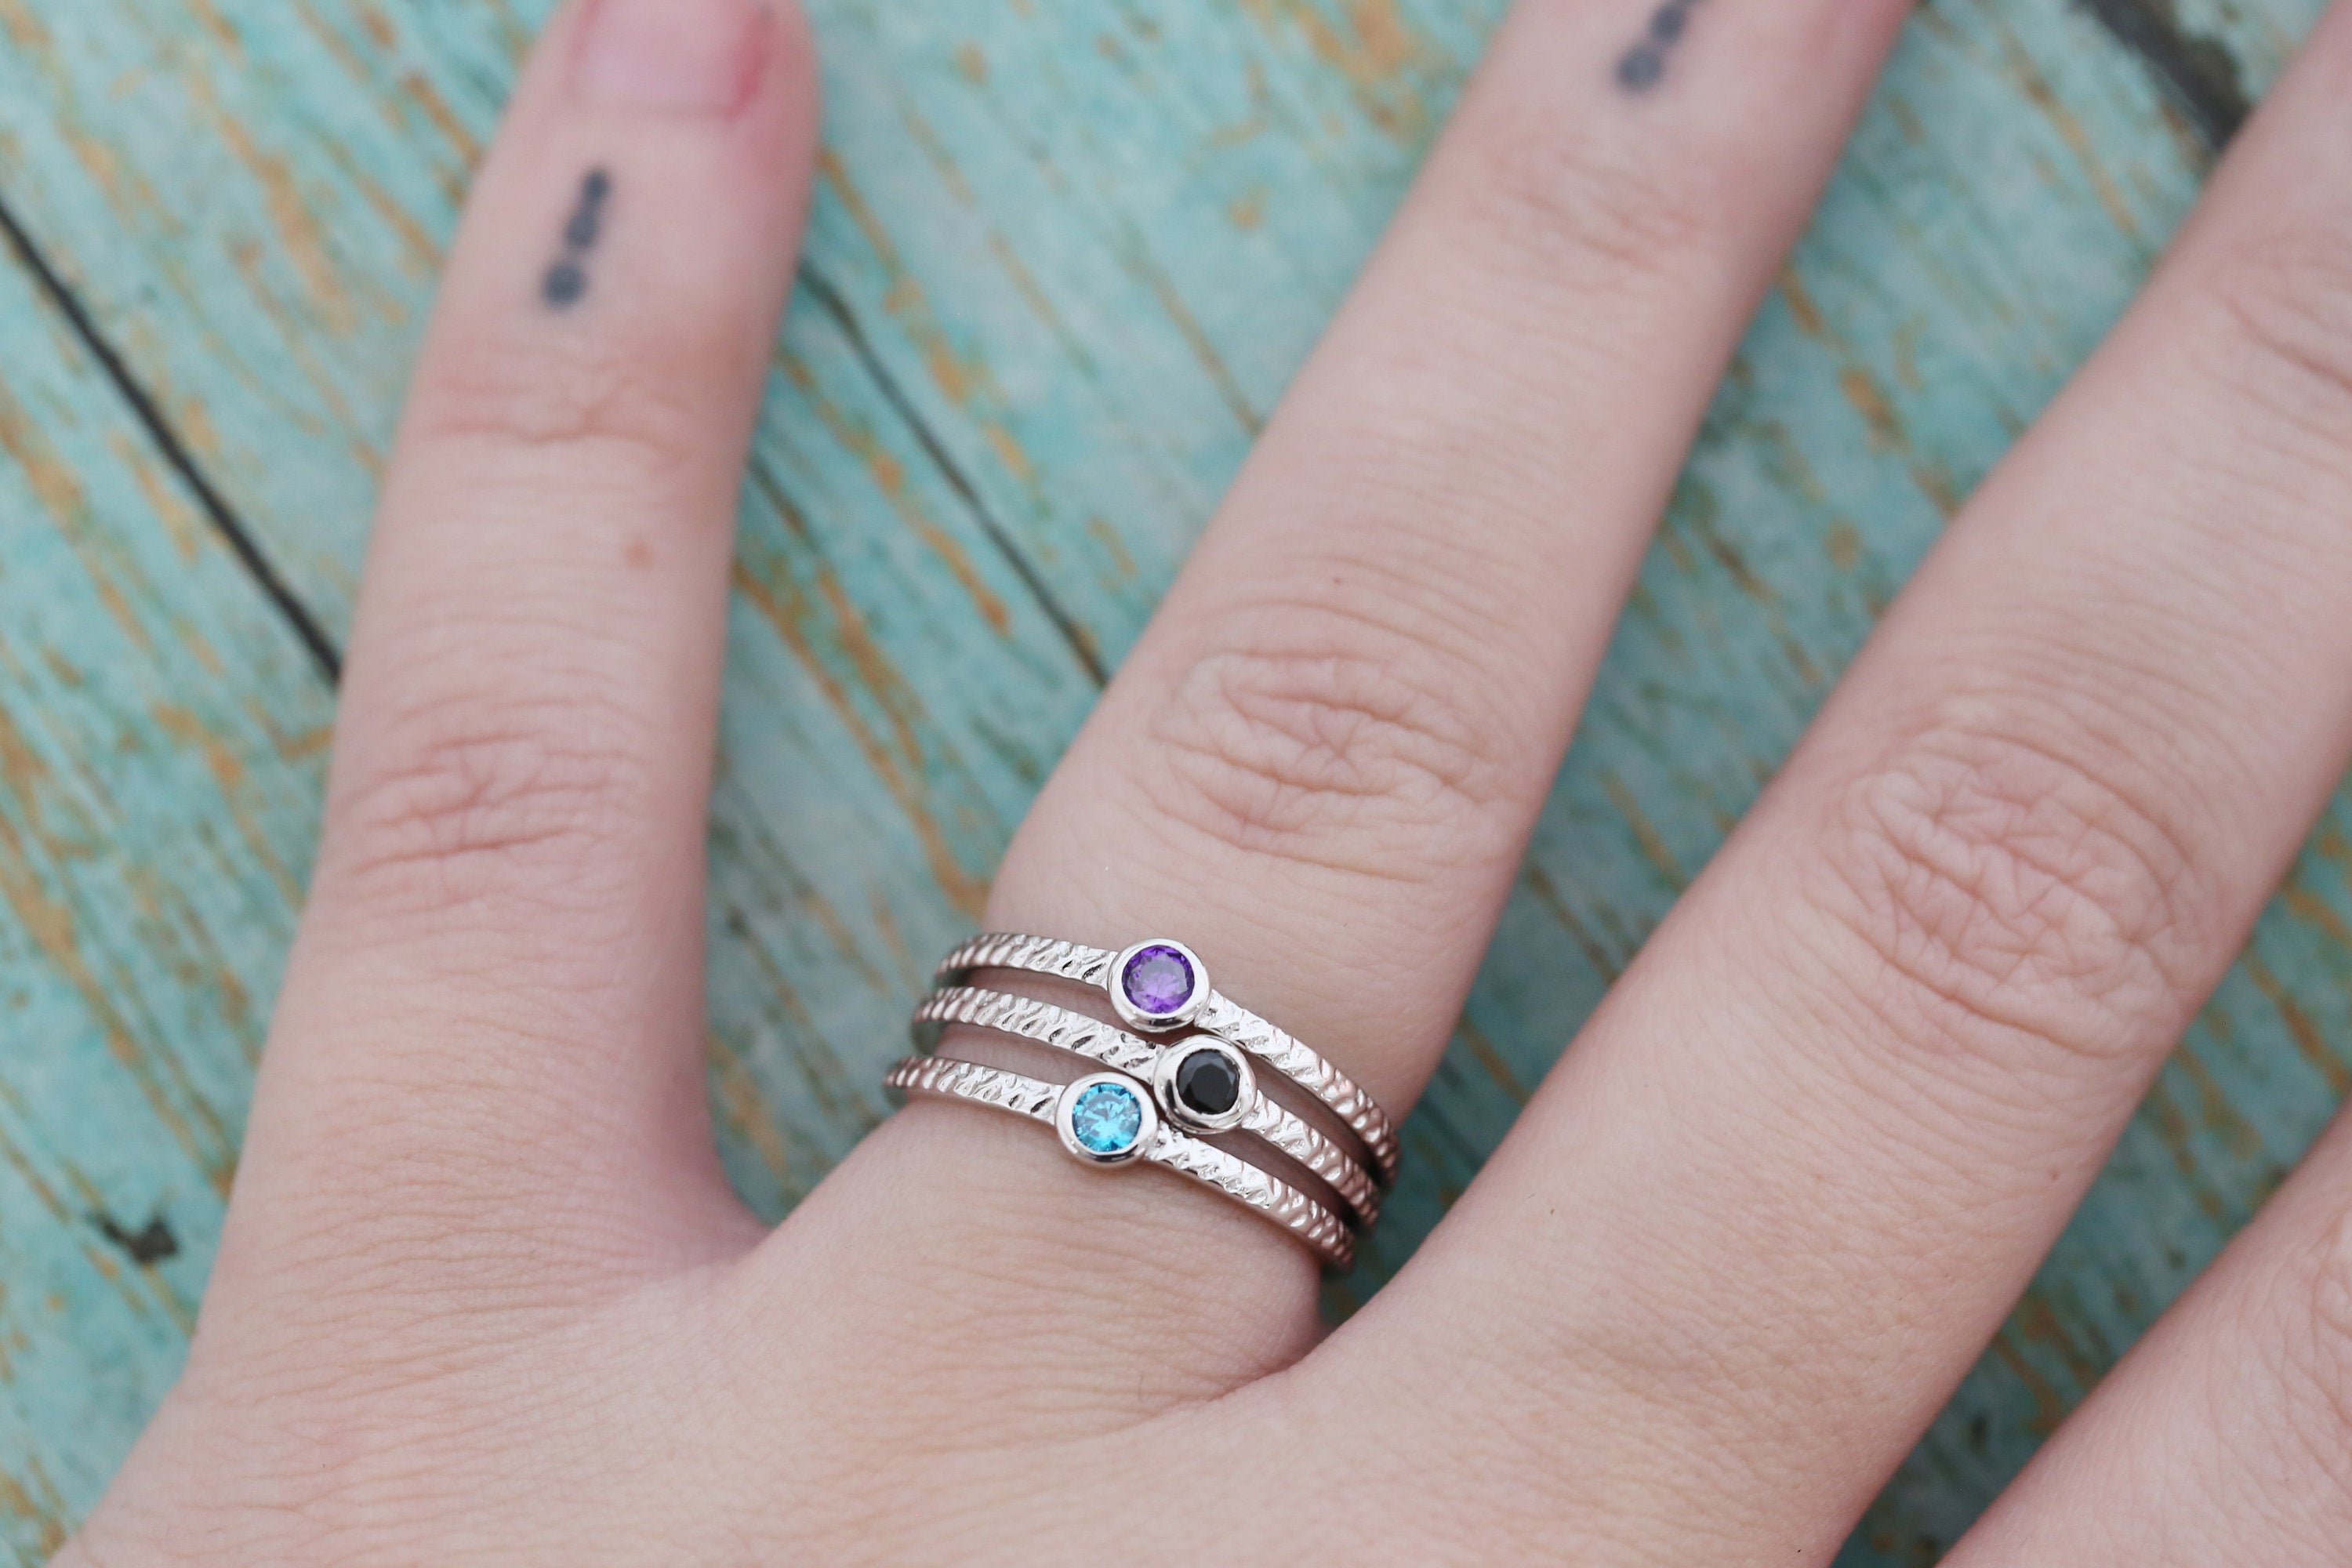 Cremation Ring - Sterling Silver April Birthstone Ring - Cremation Jewelry - Ash Ring - Ash Jewelry - Urn Ring - Urn Jewelry - Pet Loss